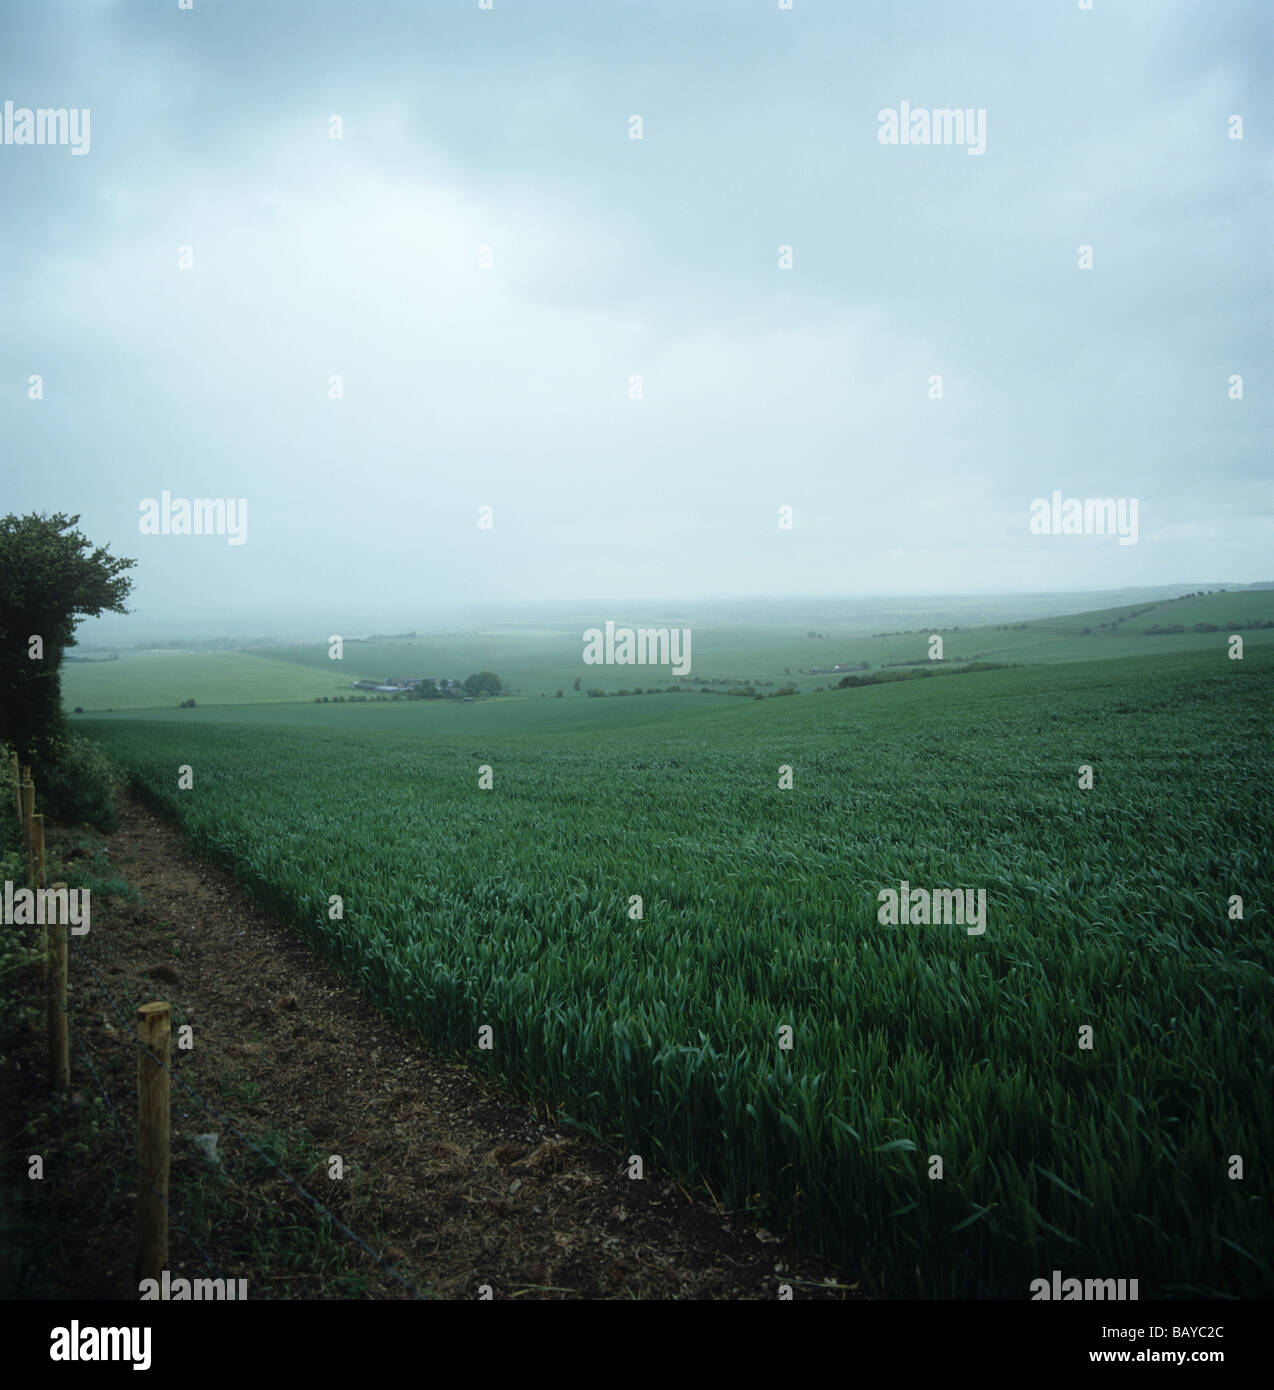 A wheat crop in ear on an overcast and rainy day Oxfordshire - Stock Image